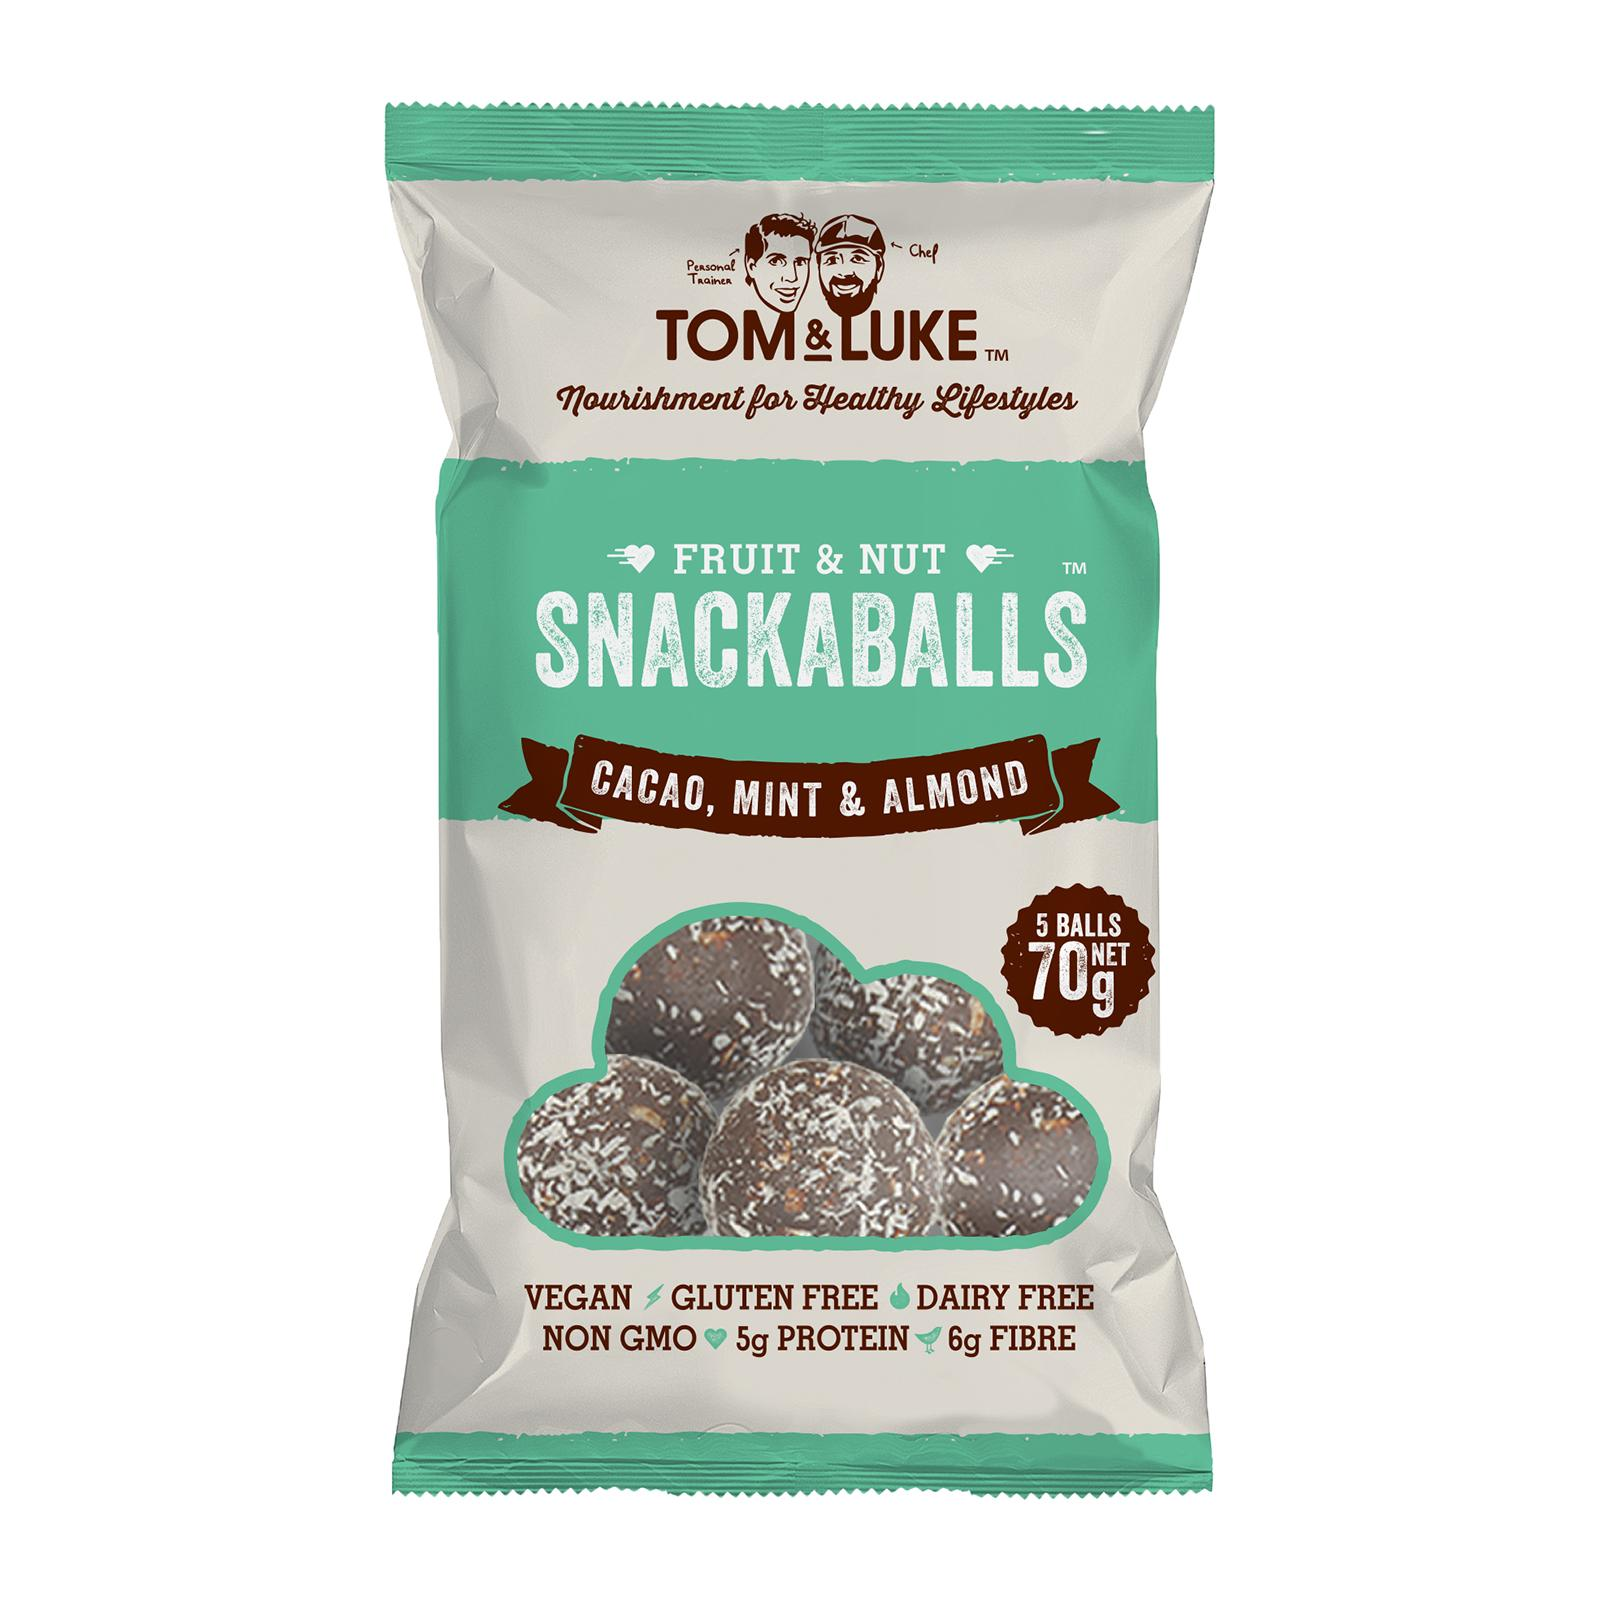 Tom & Luke Snackaball - Cacao Mint and Almond